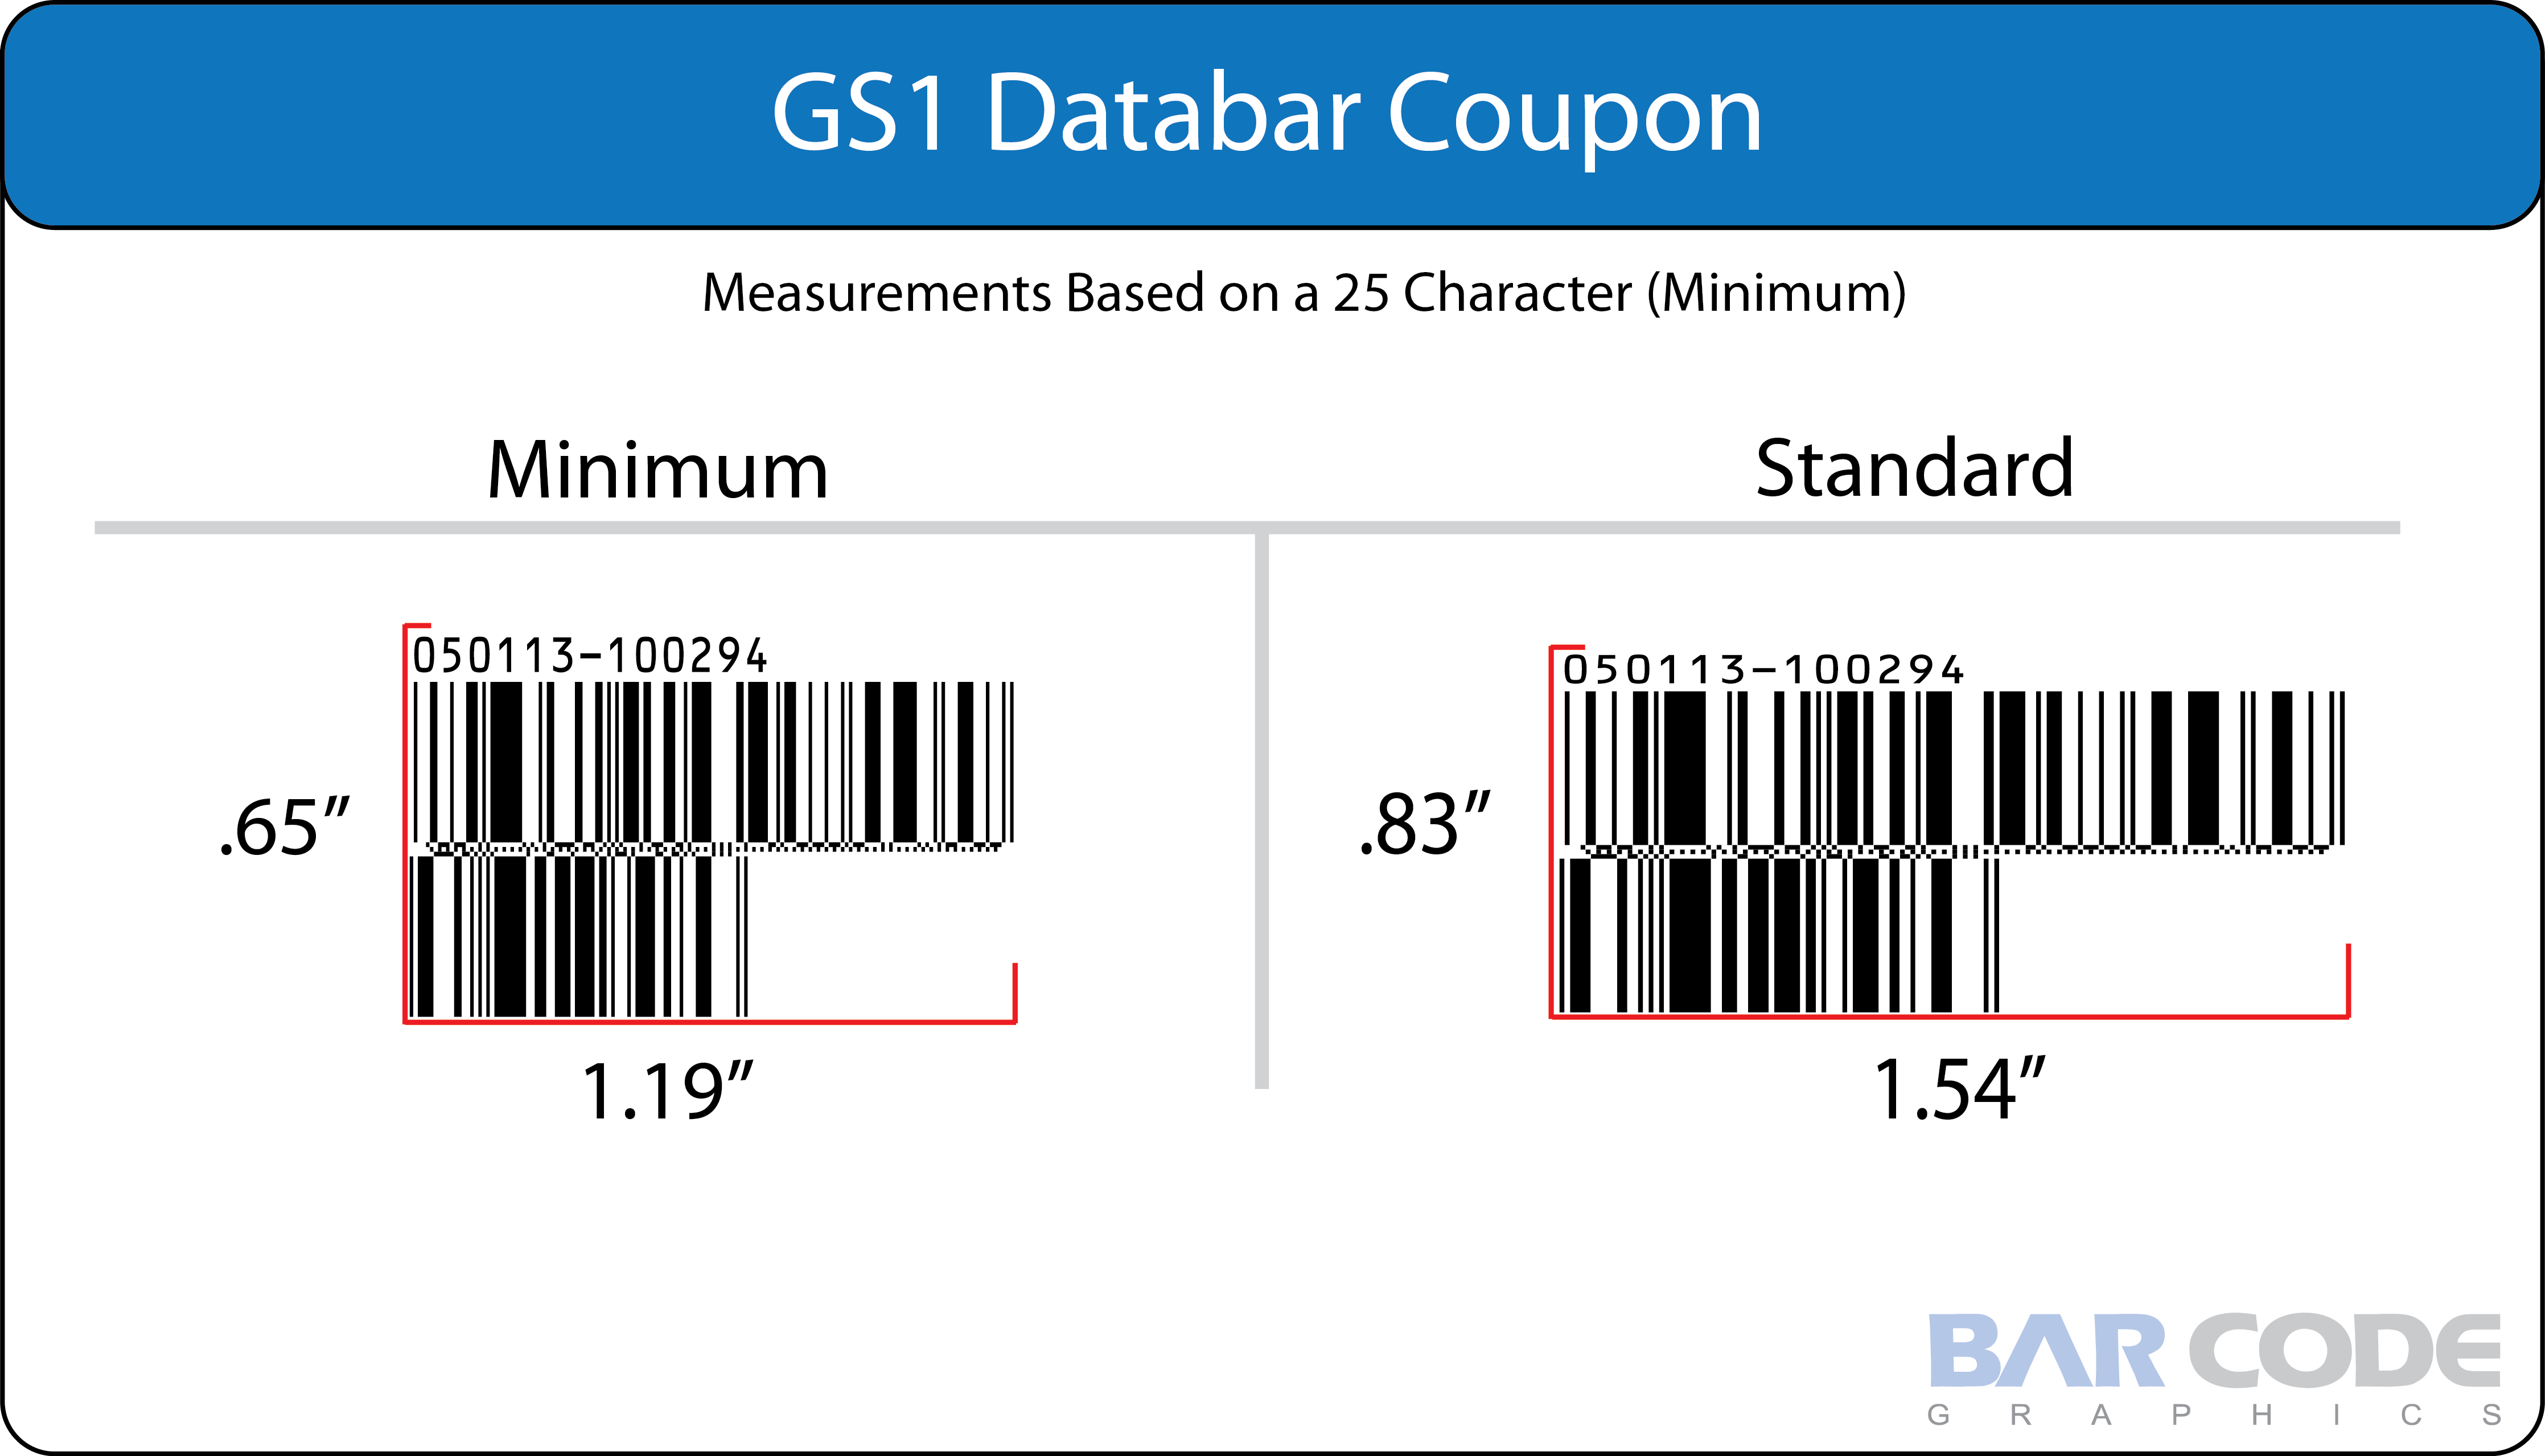 databar coupon format databar barcodedatabar barcode the chart below provides the ranges for both the interim and final databar coupon formats